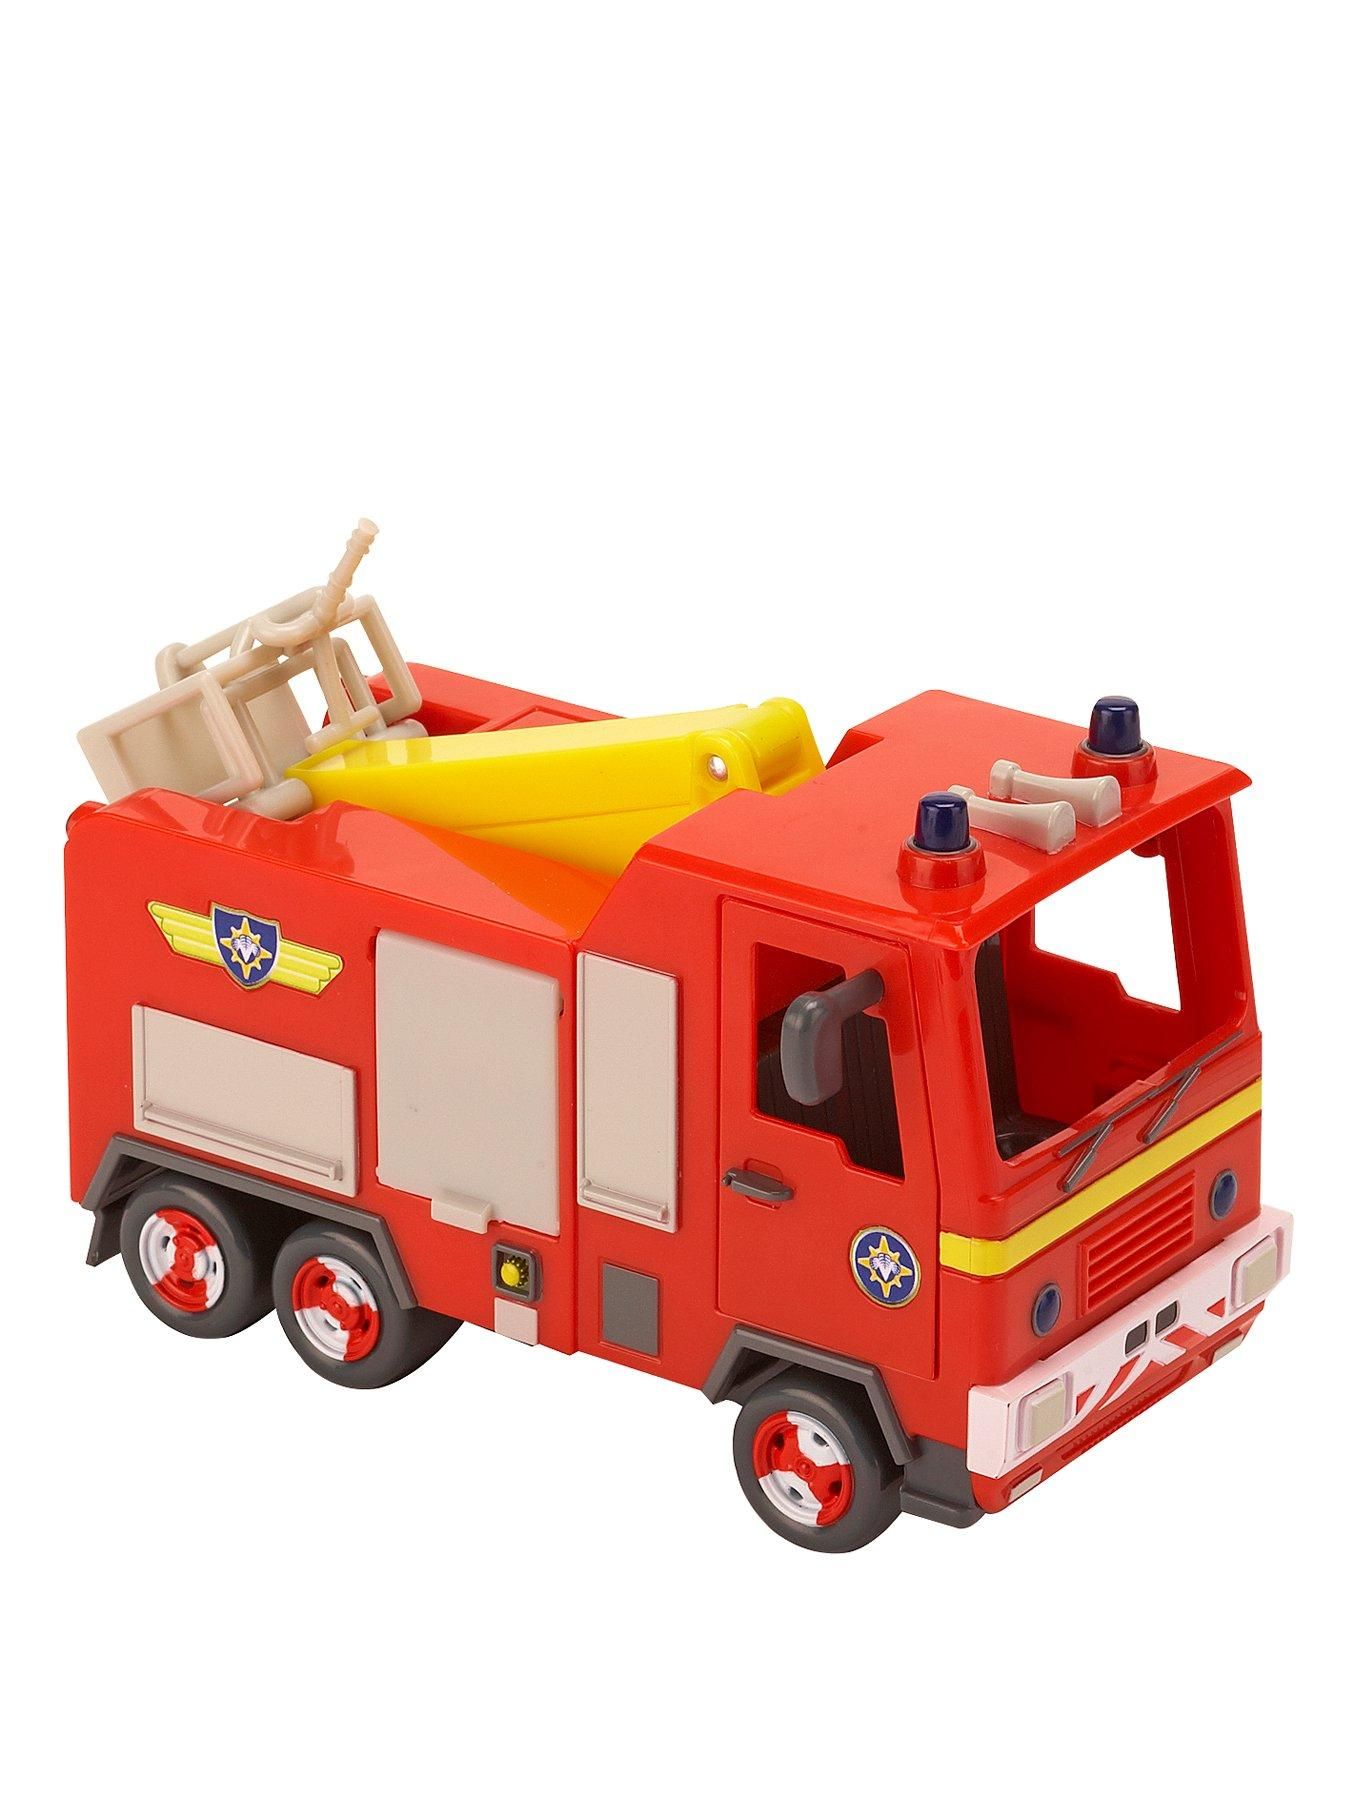 Compare prices for Fireman Sam Jupiter Vehicle